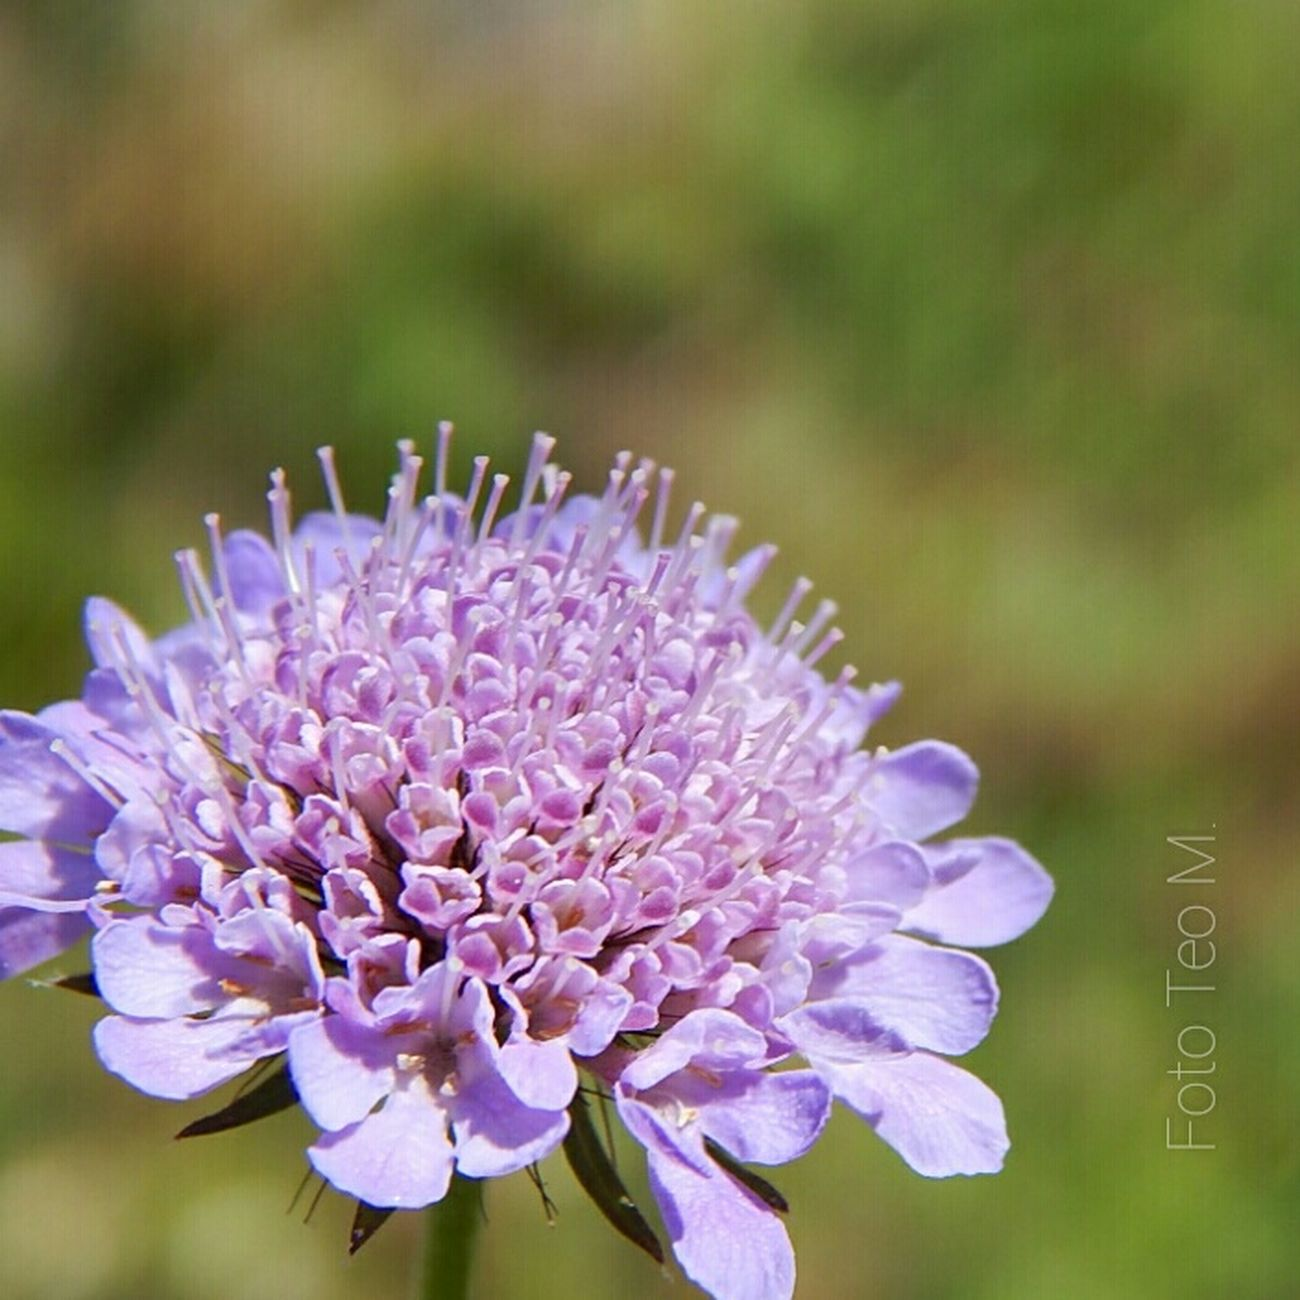 Flowers Flower EyeEm Nature Lover Nature Nature Photography Serbia Makro Photo EyeEm Gallery Violeta Eye4photography  EyeEm Best Shots Picture